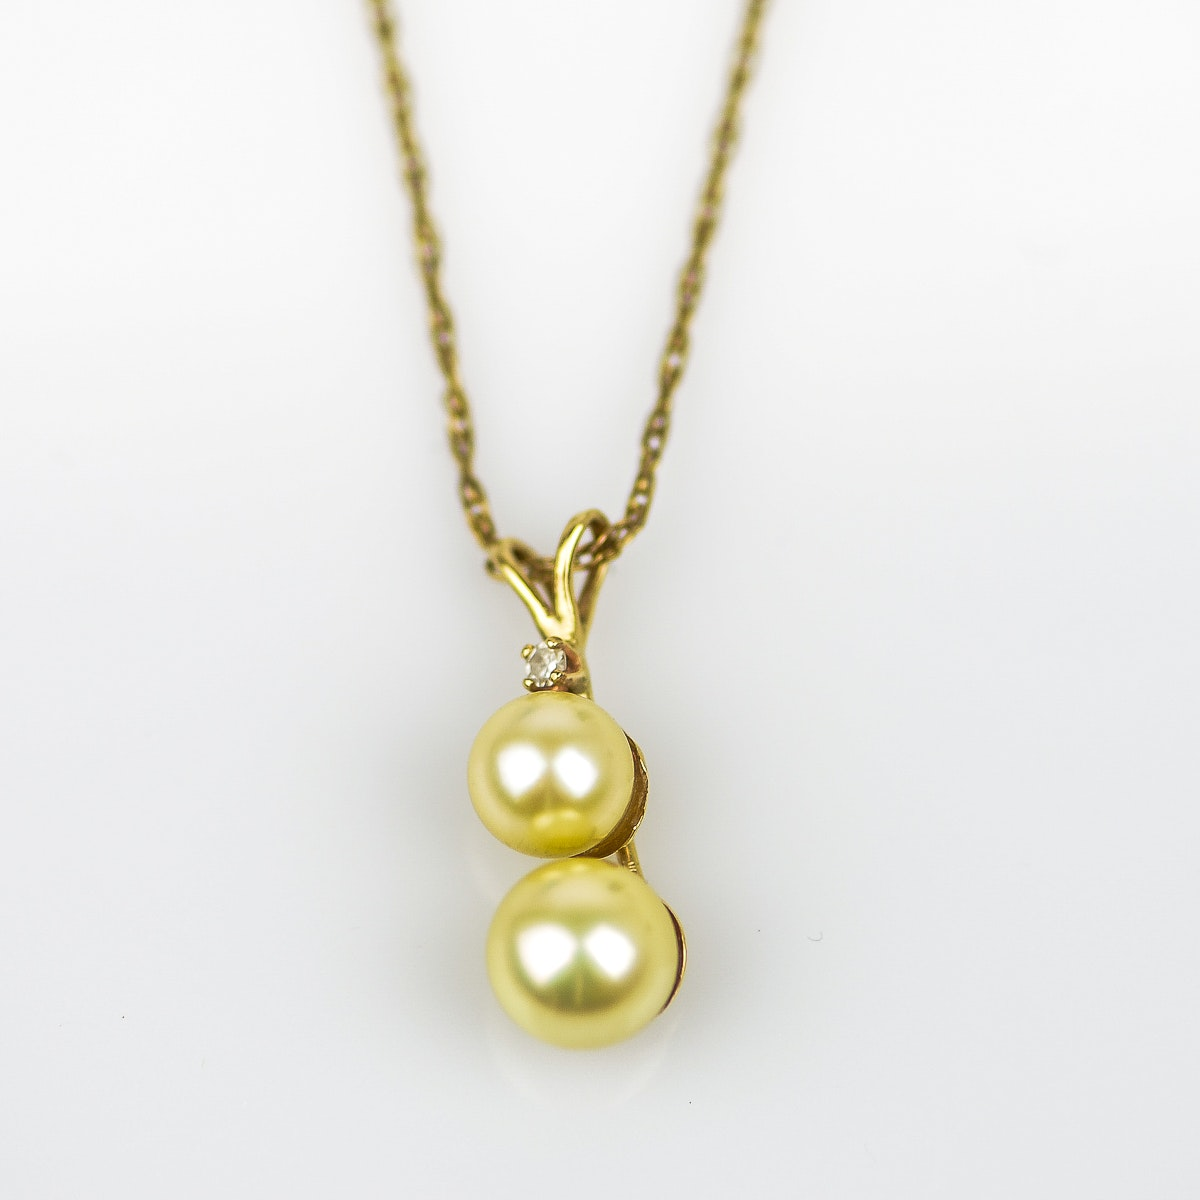 14K Gold, Pearl, and Diamond Pendant